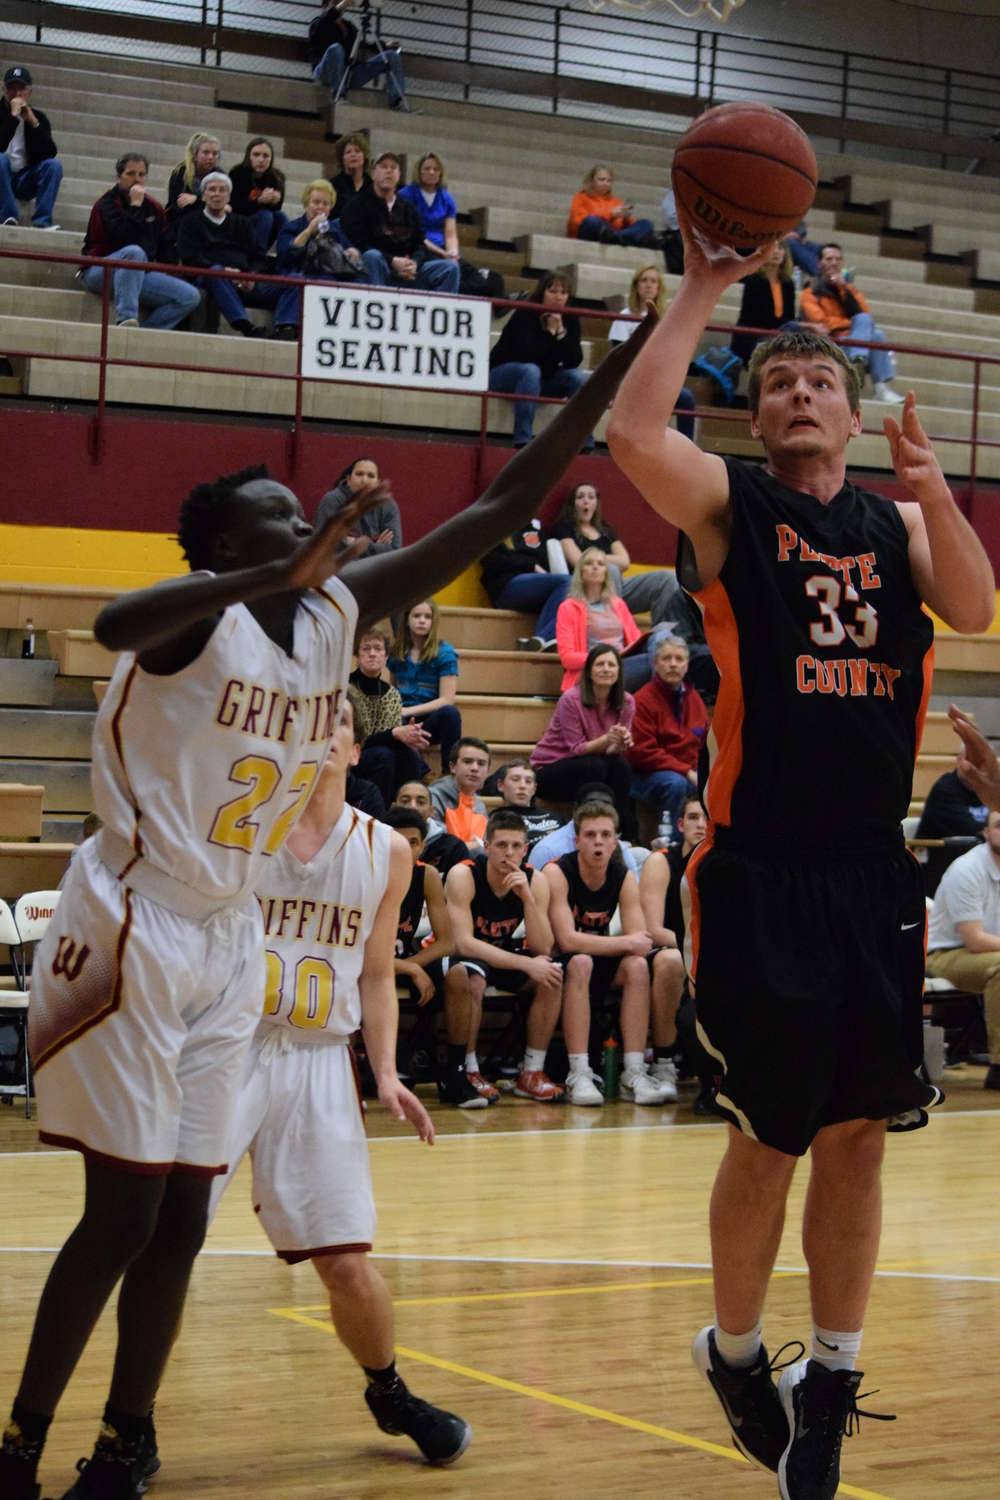 BRYCE MERENESS/Citizen photo Platte County junior Grant Carver, right, takes a shot against Winnetonka on Friday, Feb. 26 at Winnetonka High School in Kansas City, Mo.